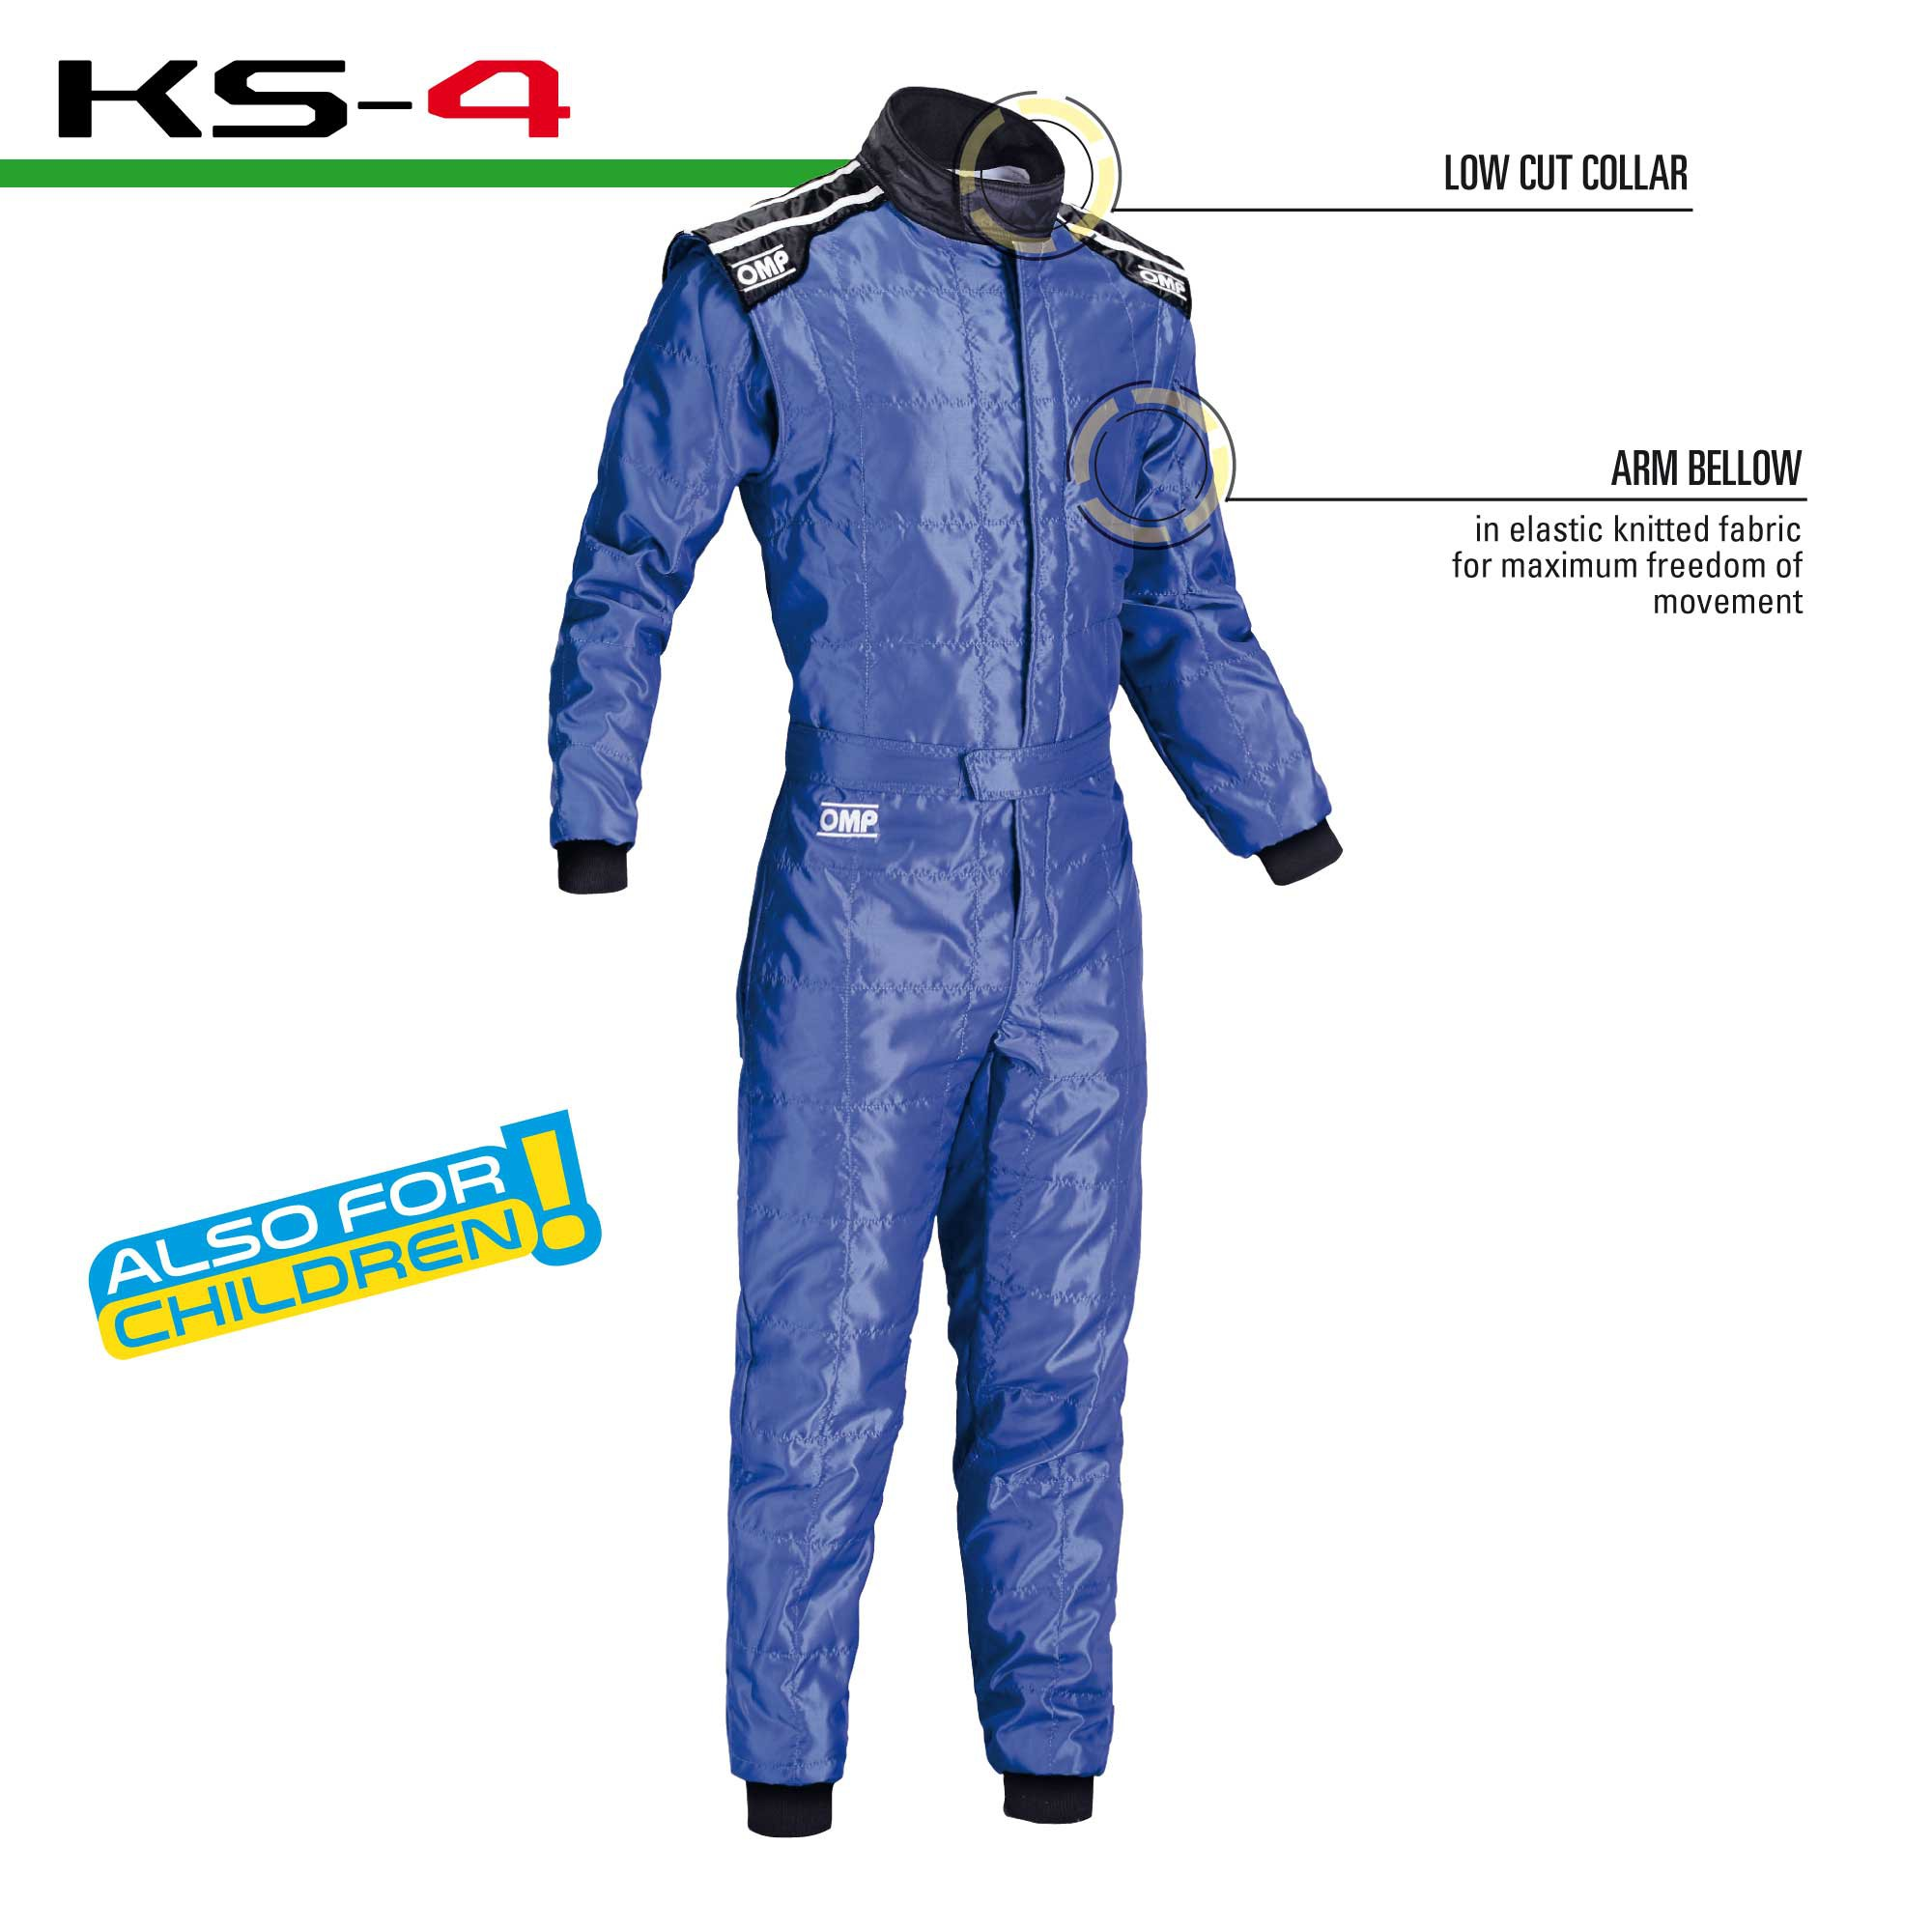 Resistant karting suits - KS-4 SUIT